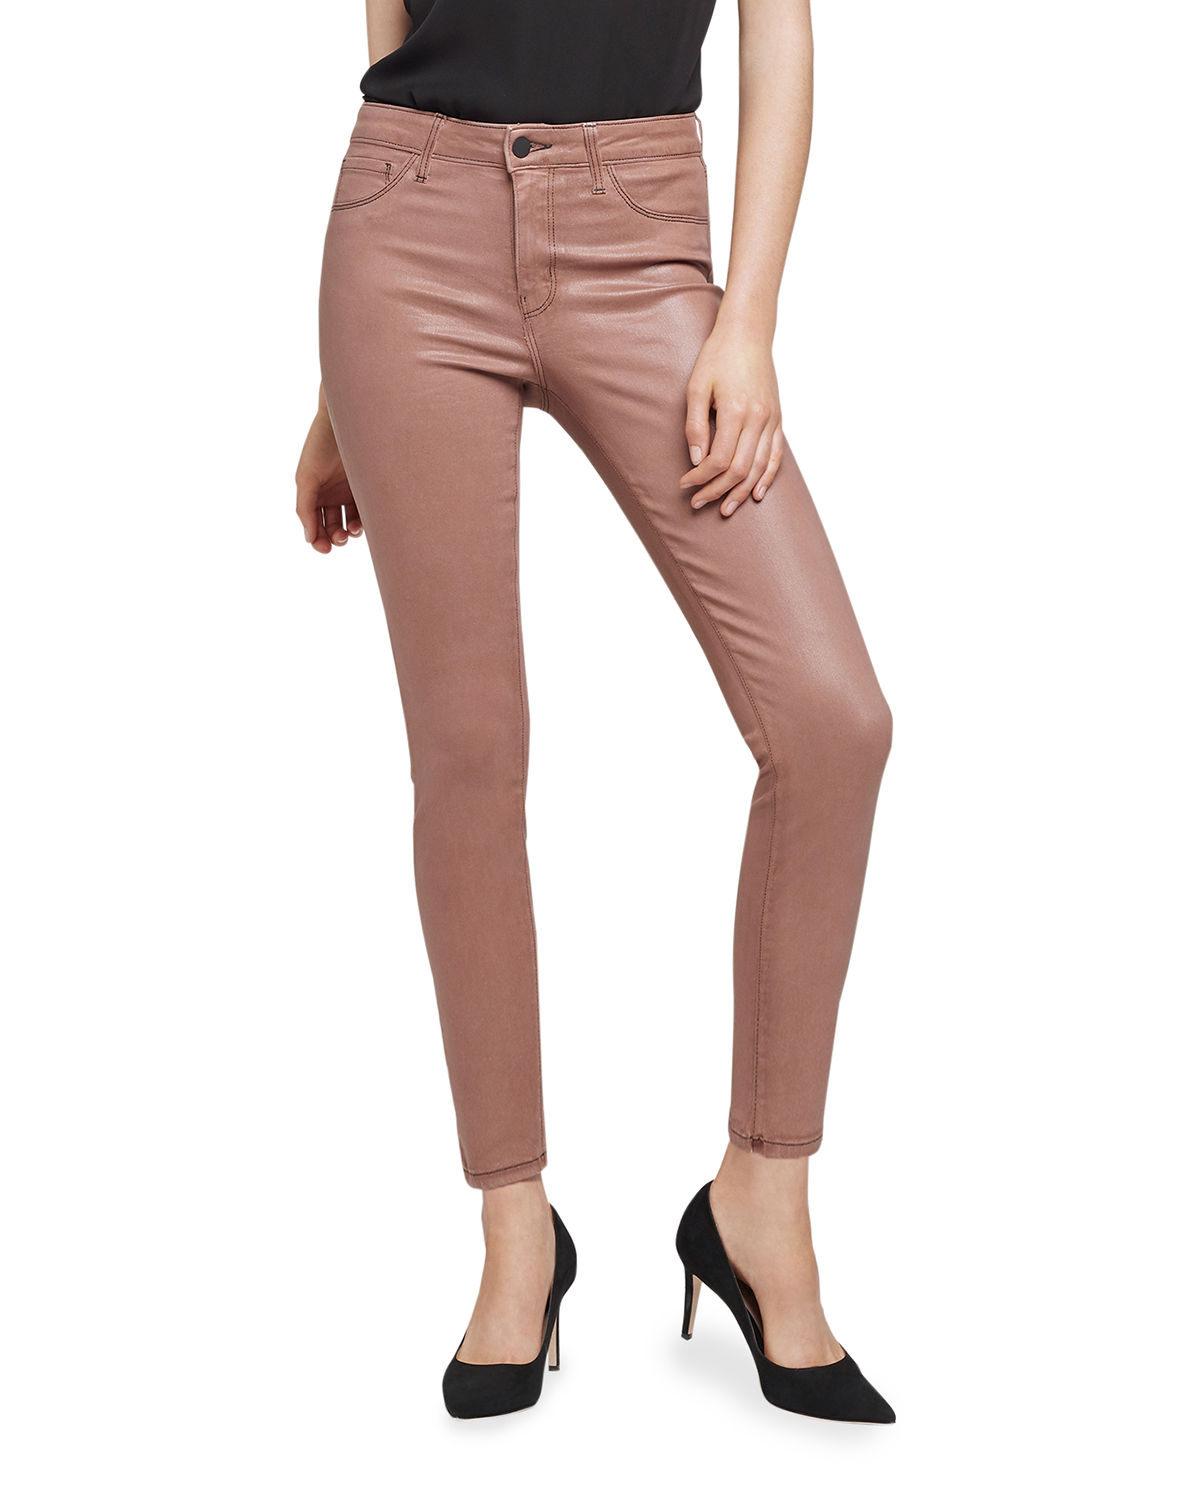 L Agence MARGUERITE COATED COTTON DENIM HIGH-RISE SKINNY JEANS